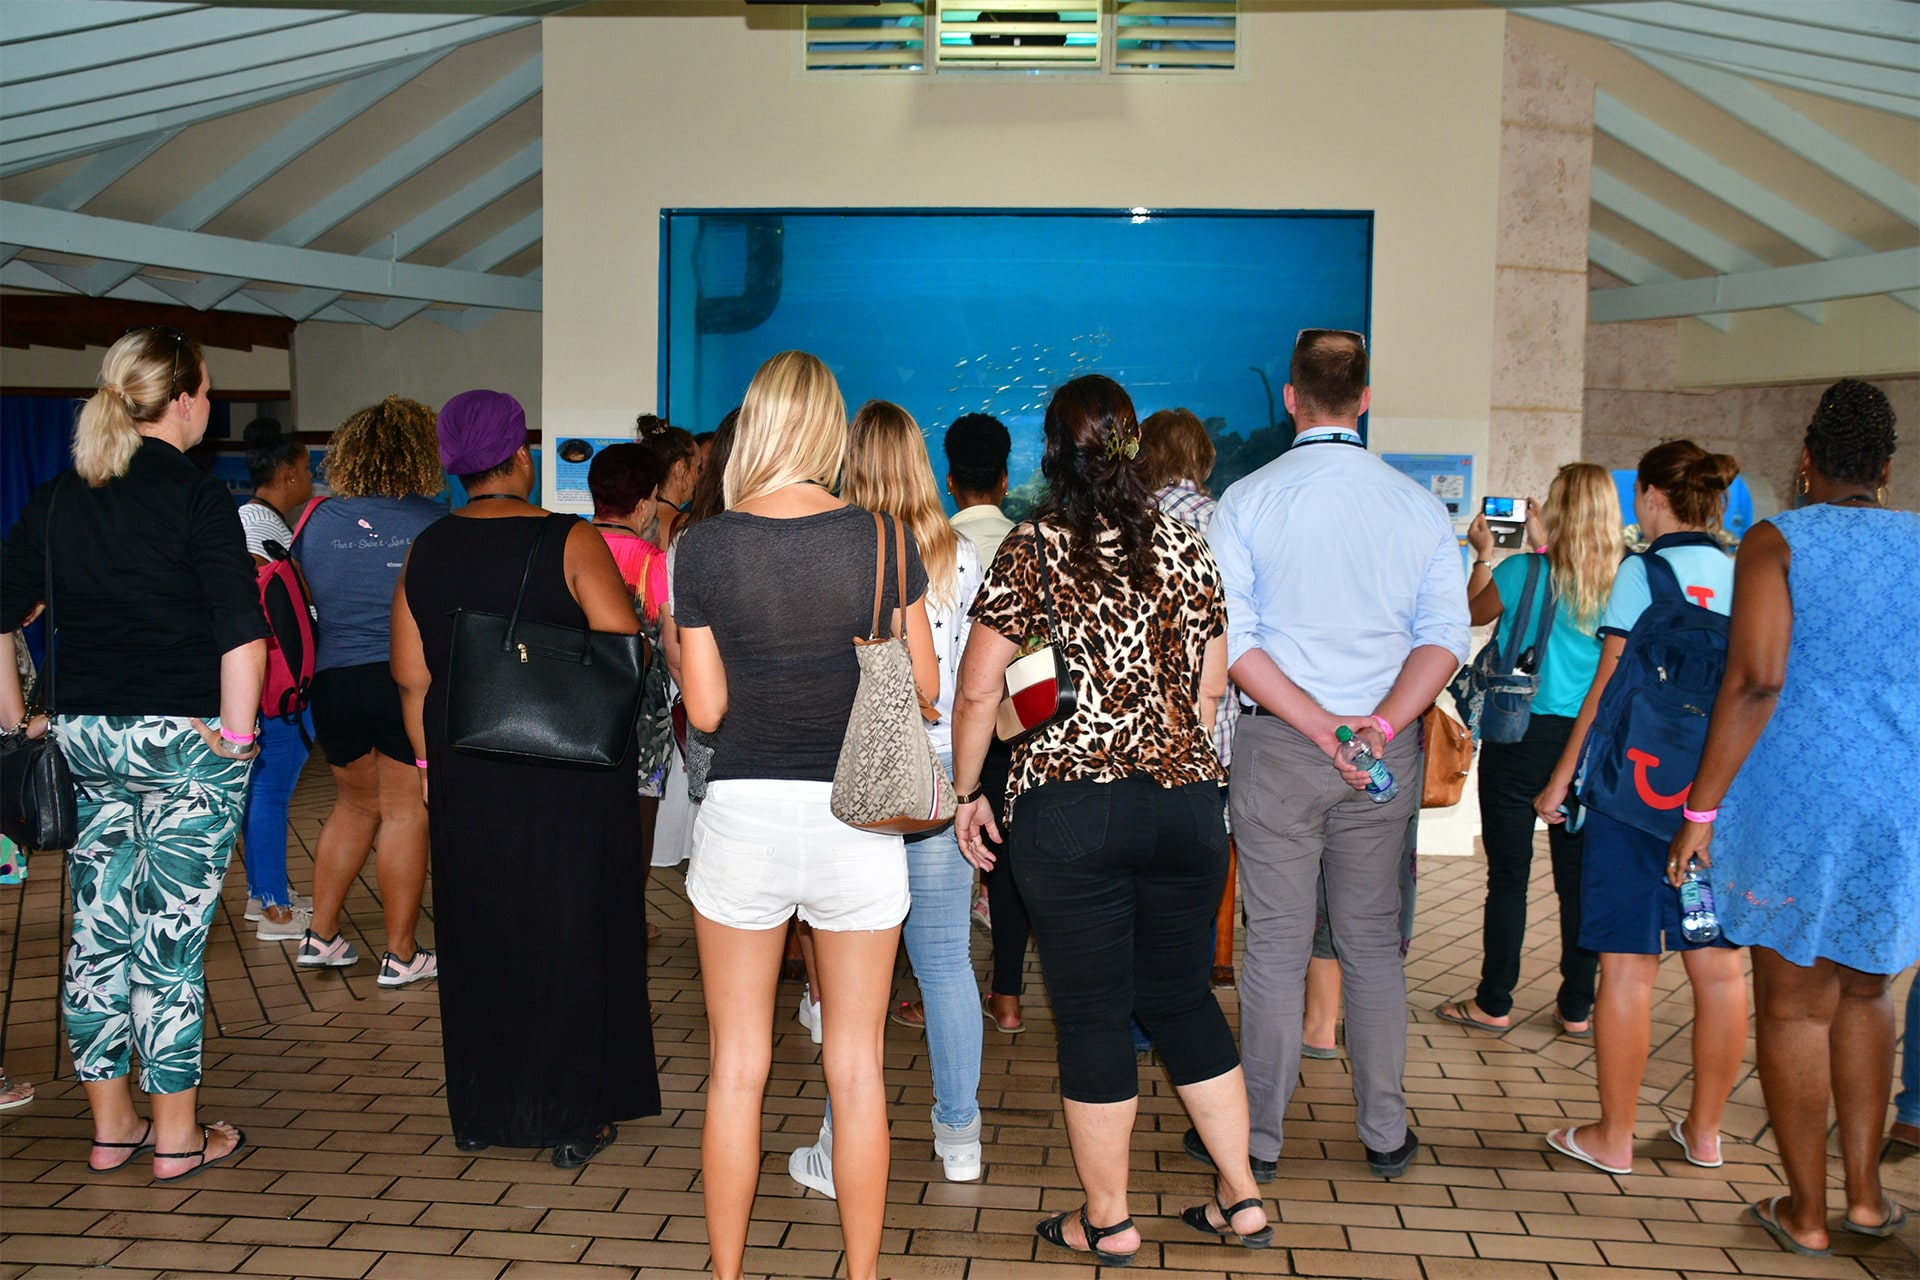 A group of tourists looking at an aquarium experiencing the underwater world at sea aquarium Curaçao.